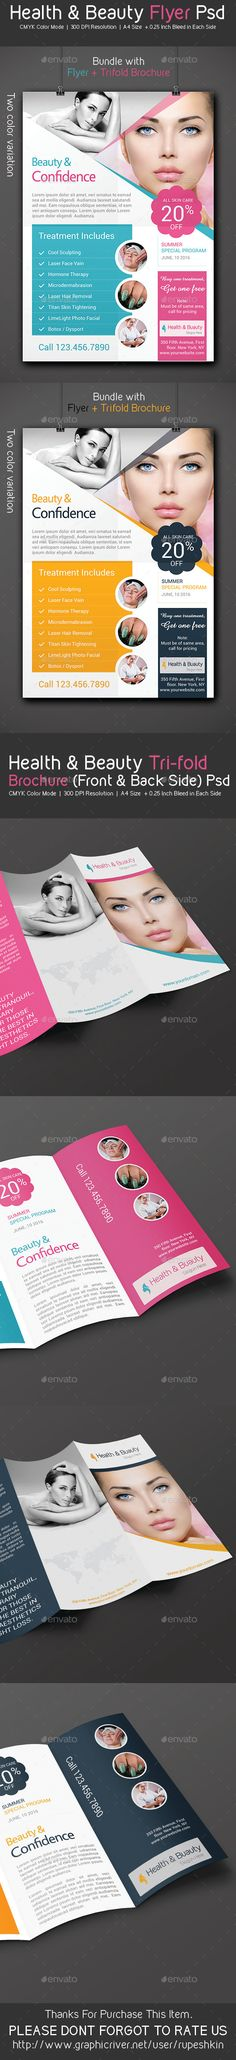 Health & Beauty Flyer & Trifold Brochure Pack